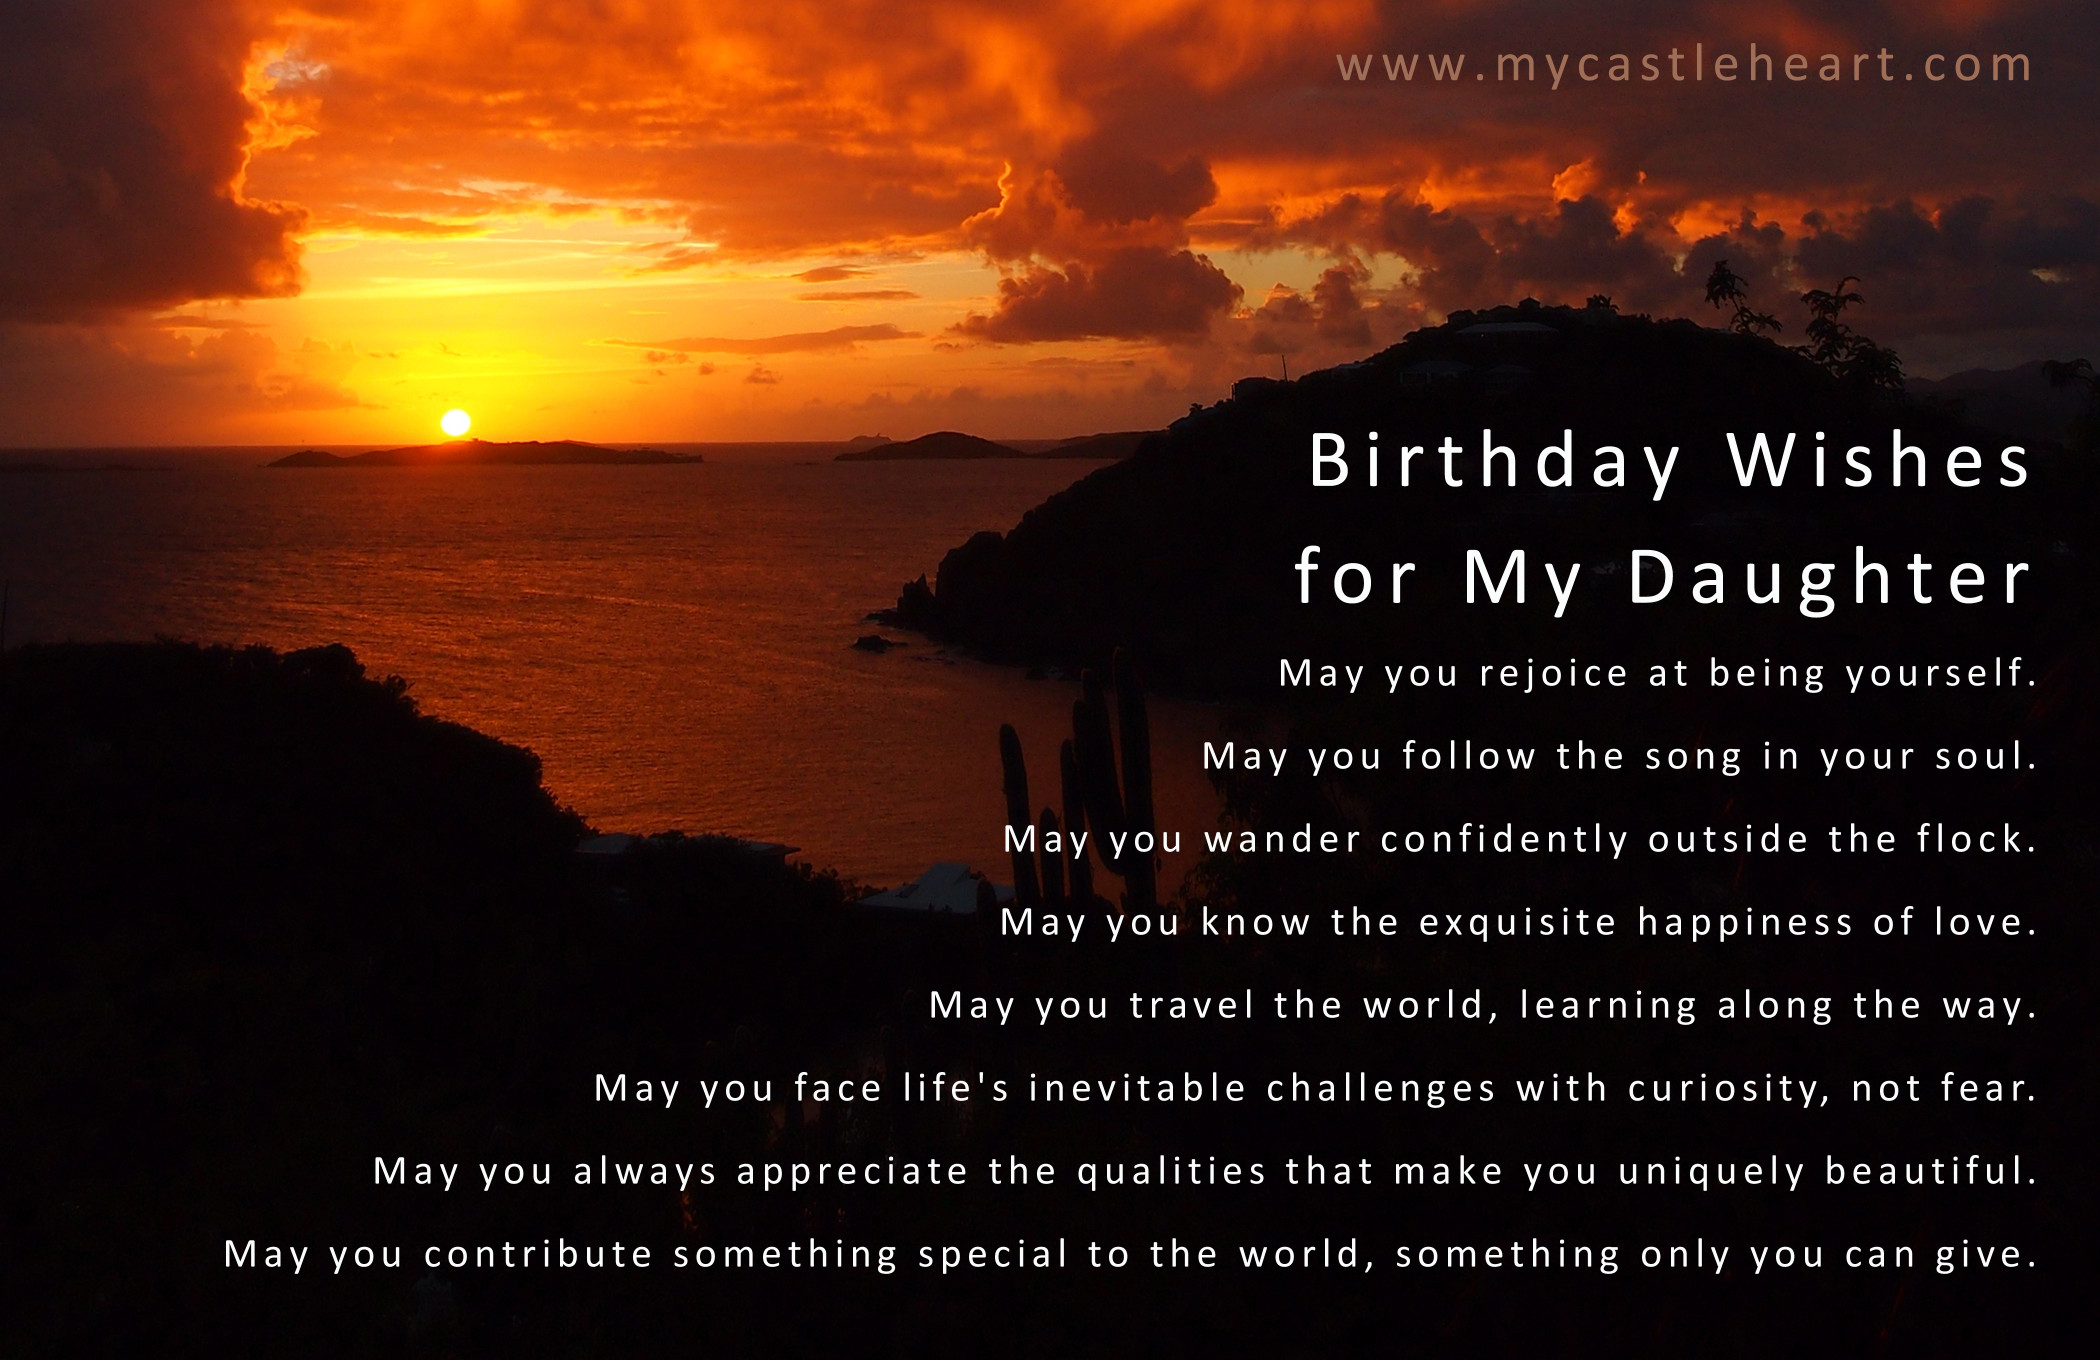 Best ideas about Birthday Wishes For Daughters . Save or Pin Birthday Wishes for My Daughter Now.